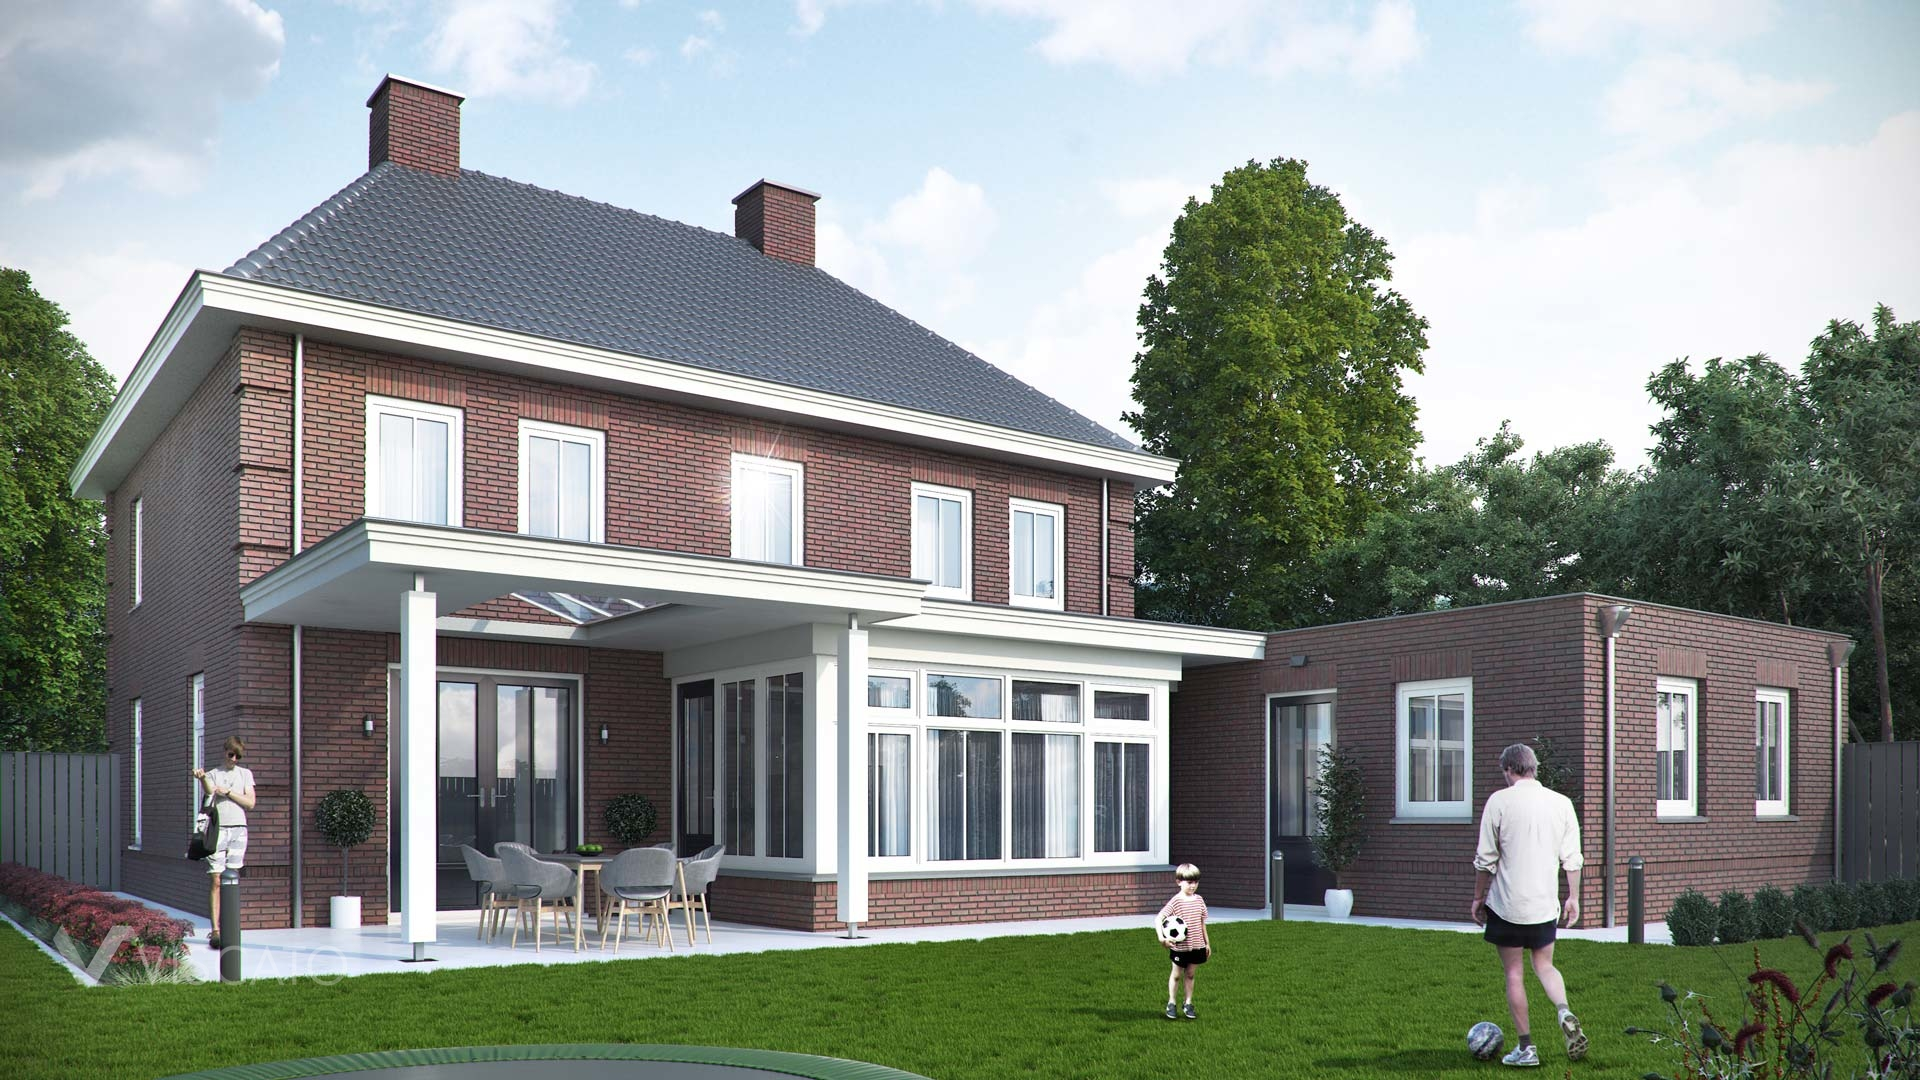 Brick villa house in Holland- garden view with lawn, garage and terrace